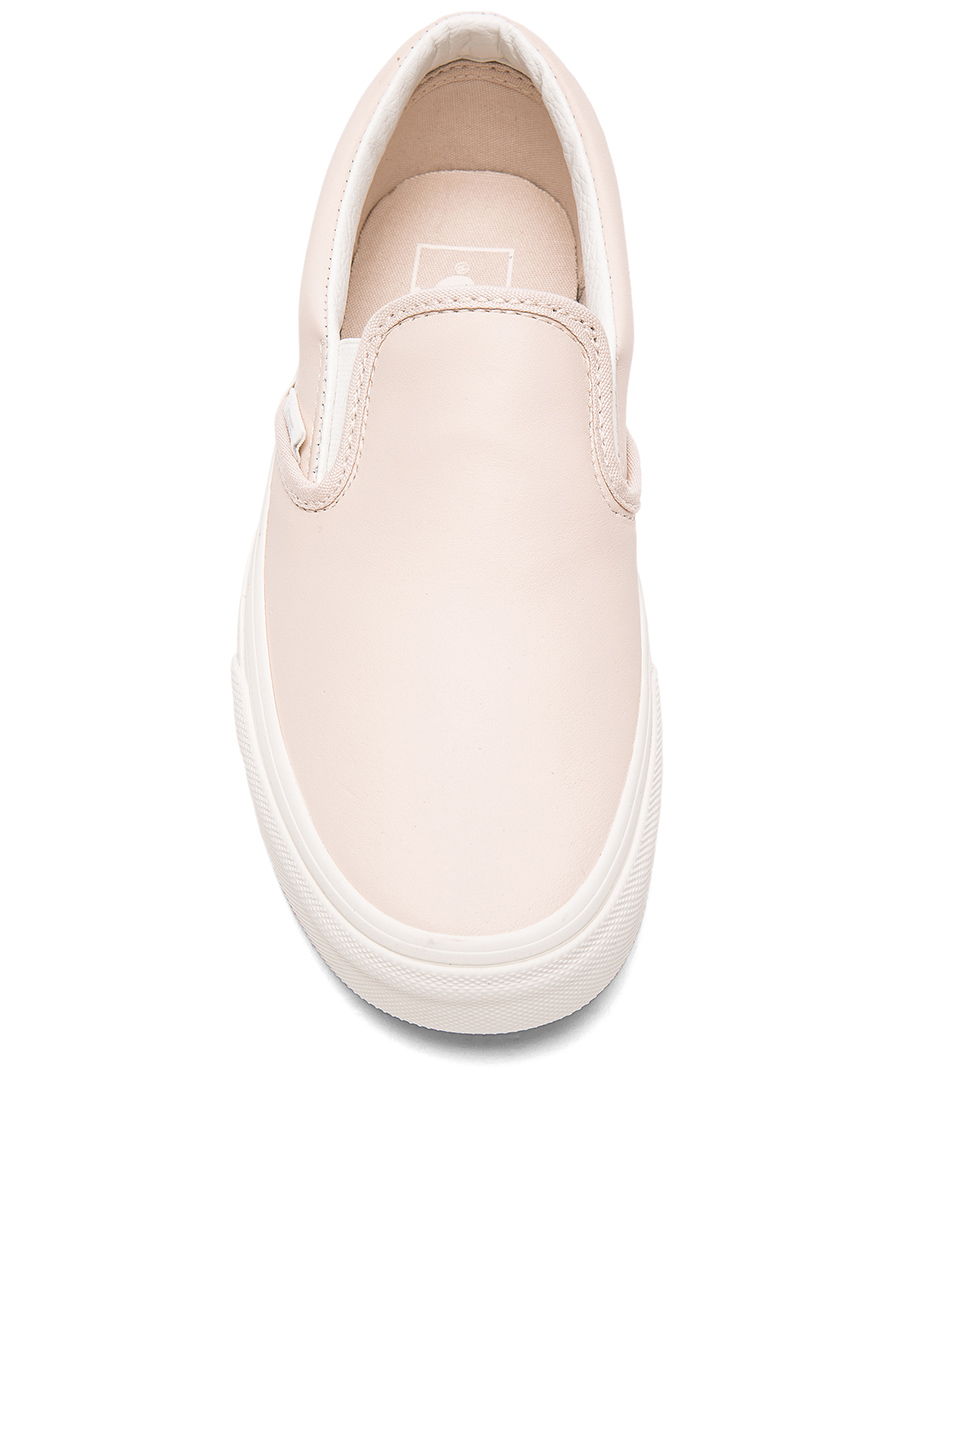 53eb60f63013 Lyst - Vans Leather Classic Slip-on in Pink